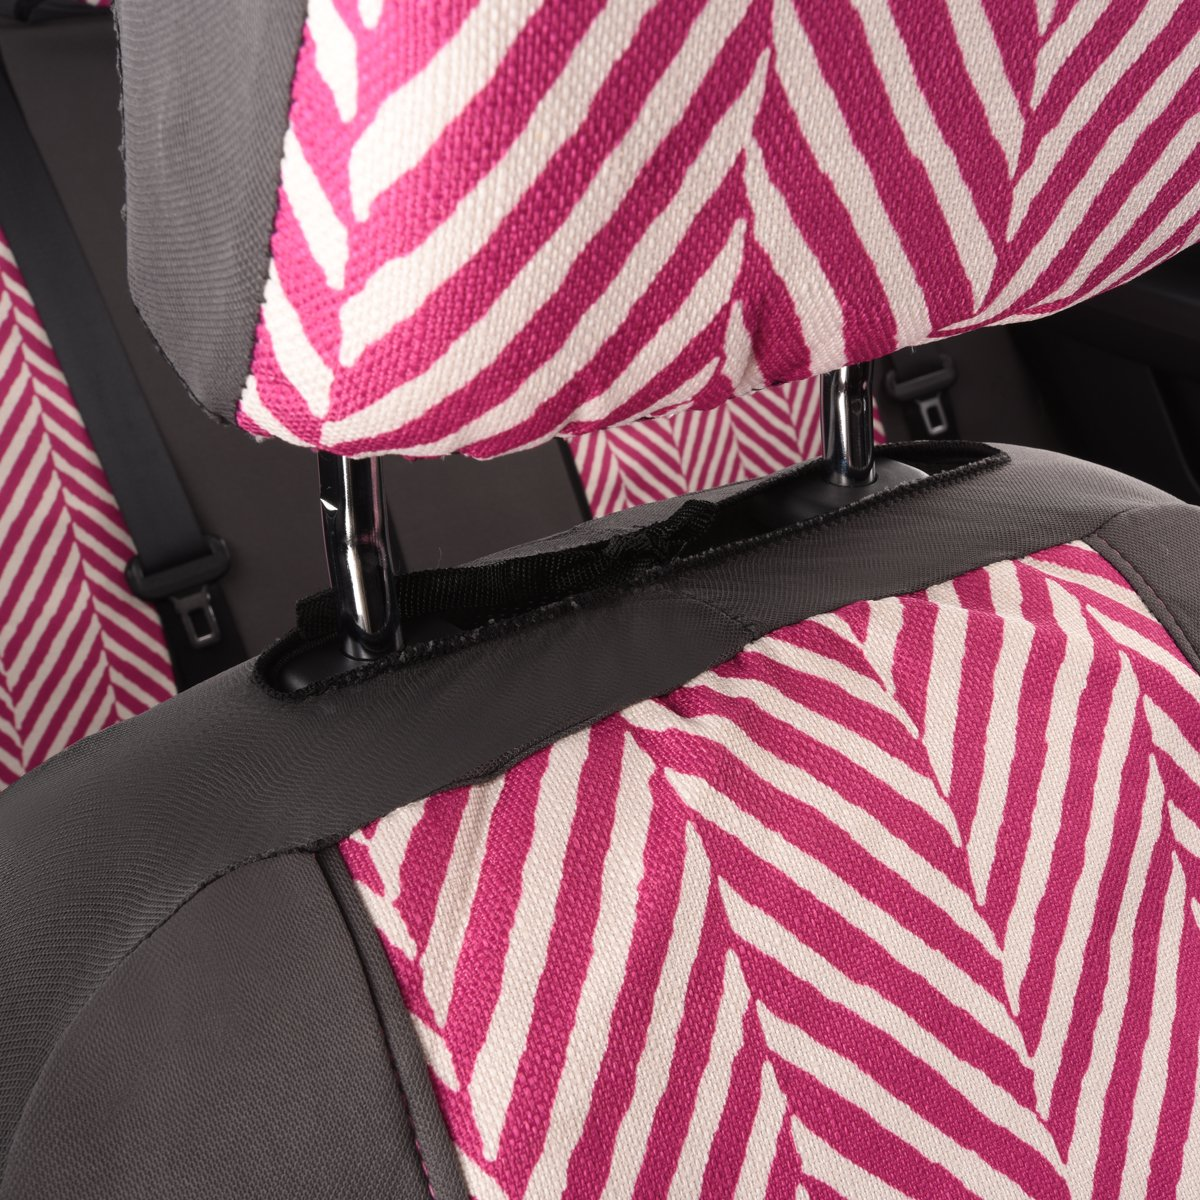 Black and pink color Airbag Compatiable NEW ARRIVAL-Car Pass HOMESTYLE Ramie Cotton Universal Fit car seat covers With Opening Holes for headrest and seat belt